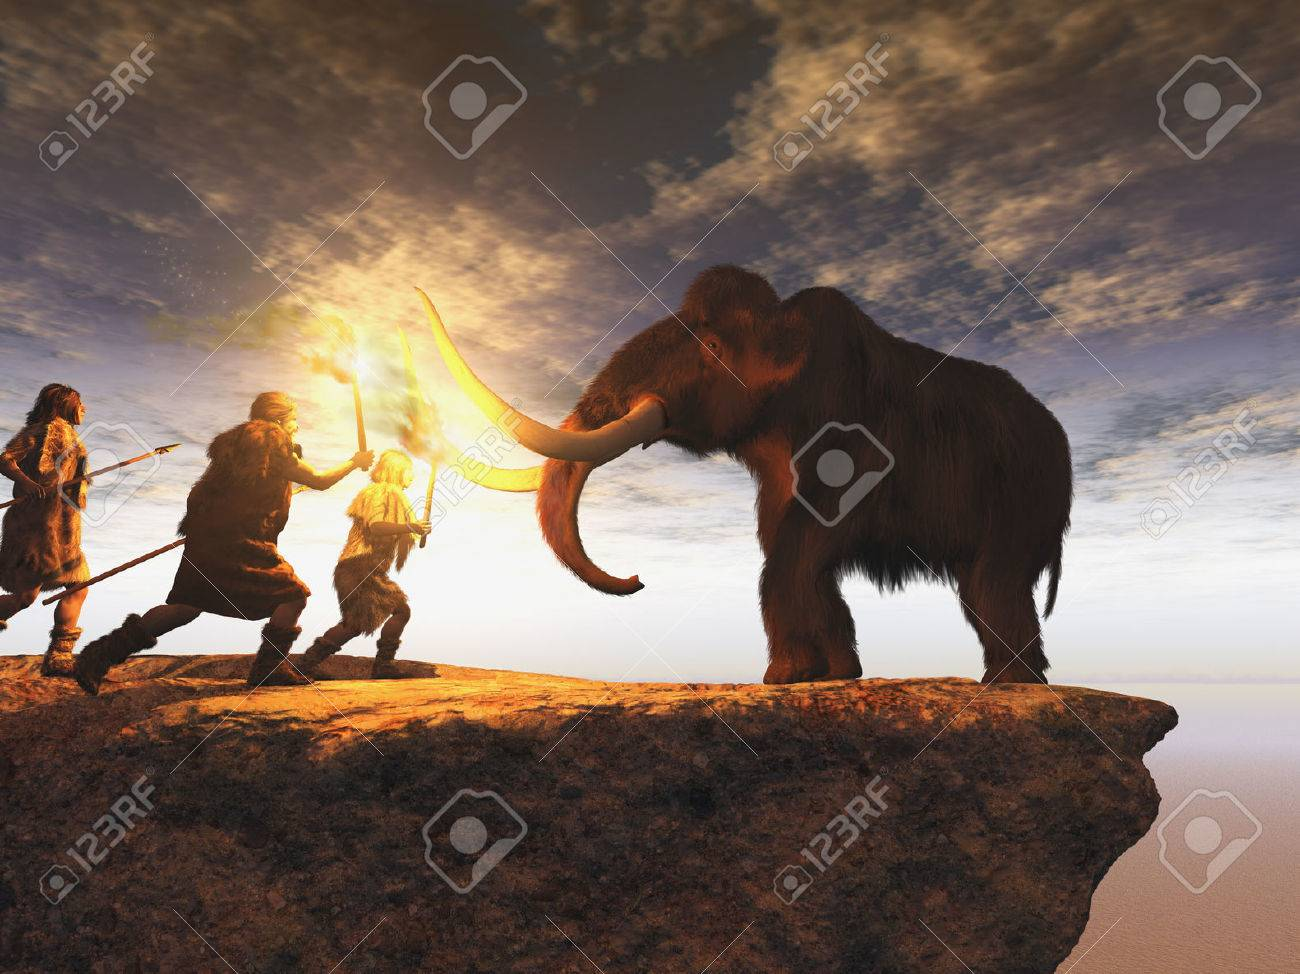 Prehistoric men hunting a young mammoth - 83913741